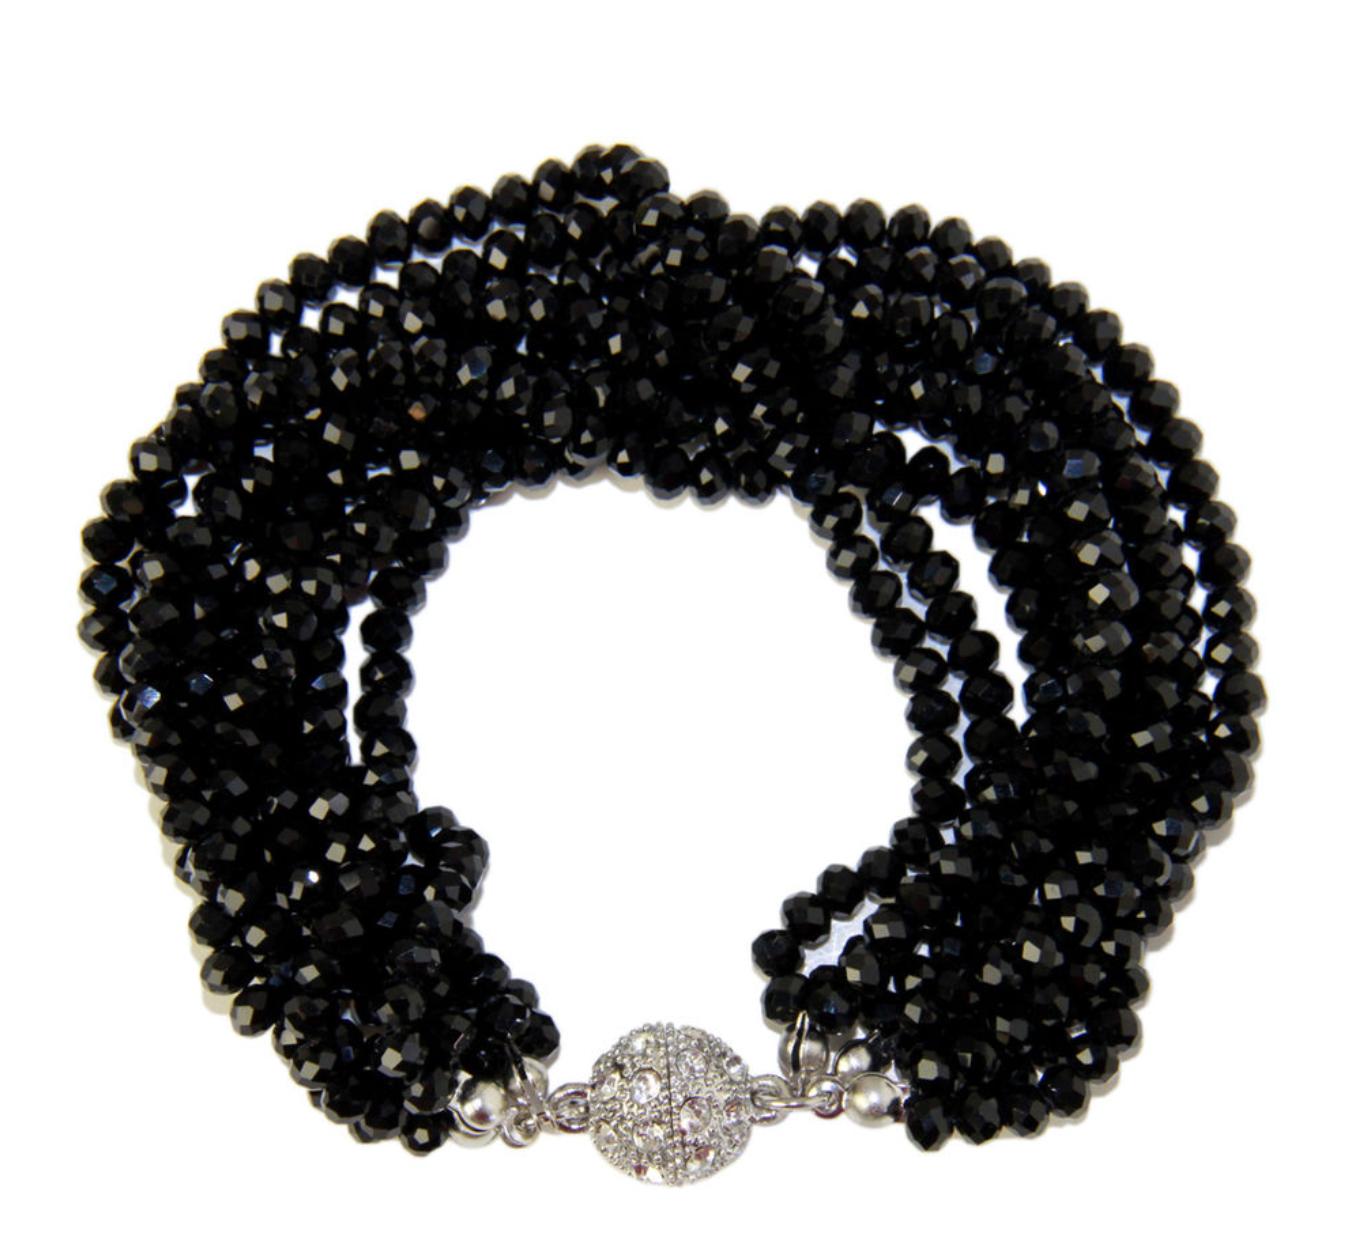 Stylish Multi Strand Black Bracelet